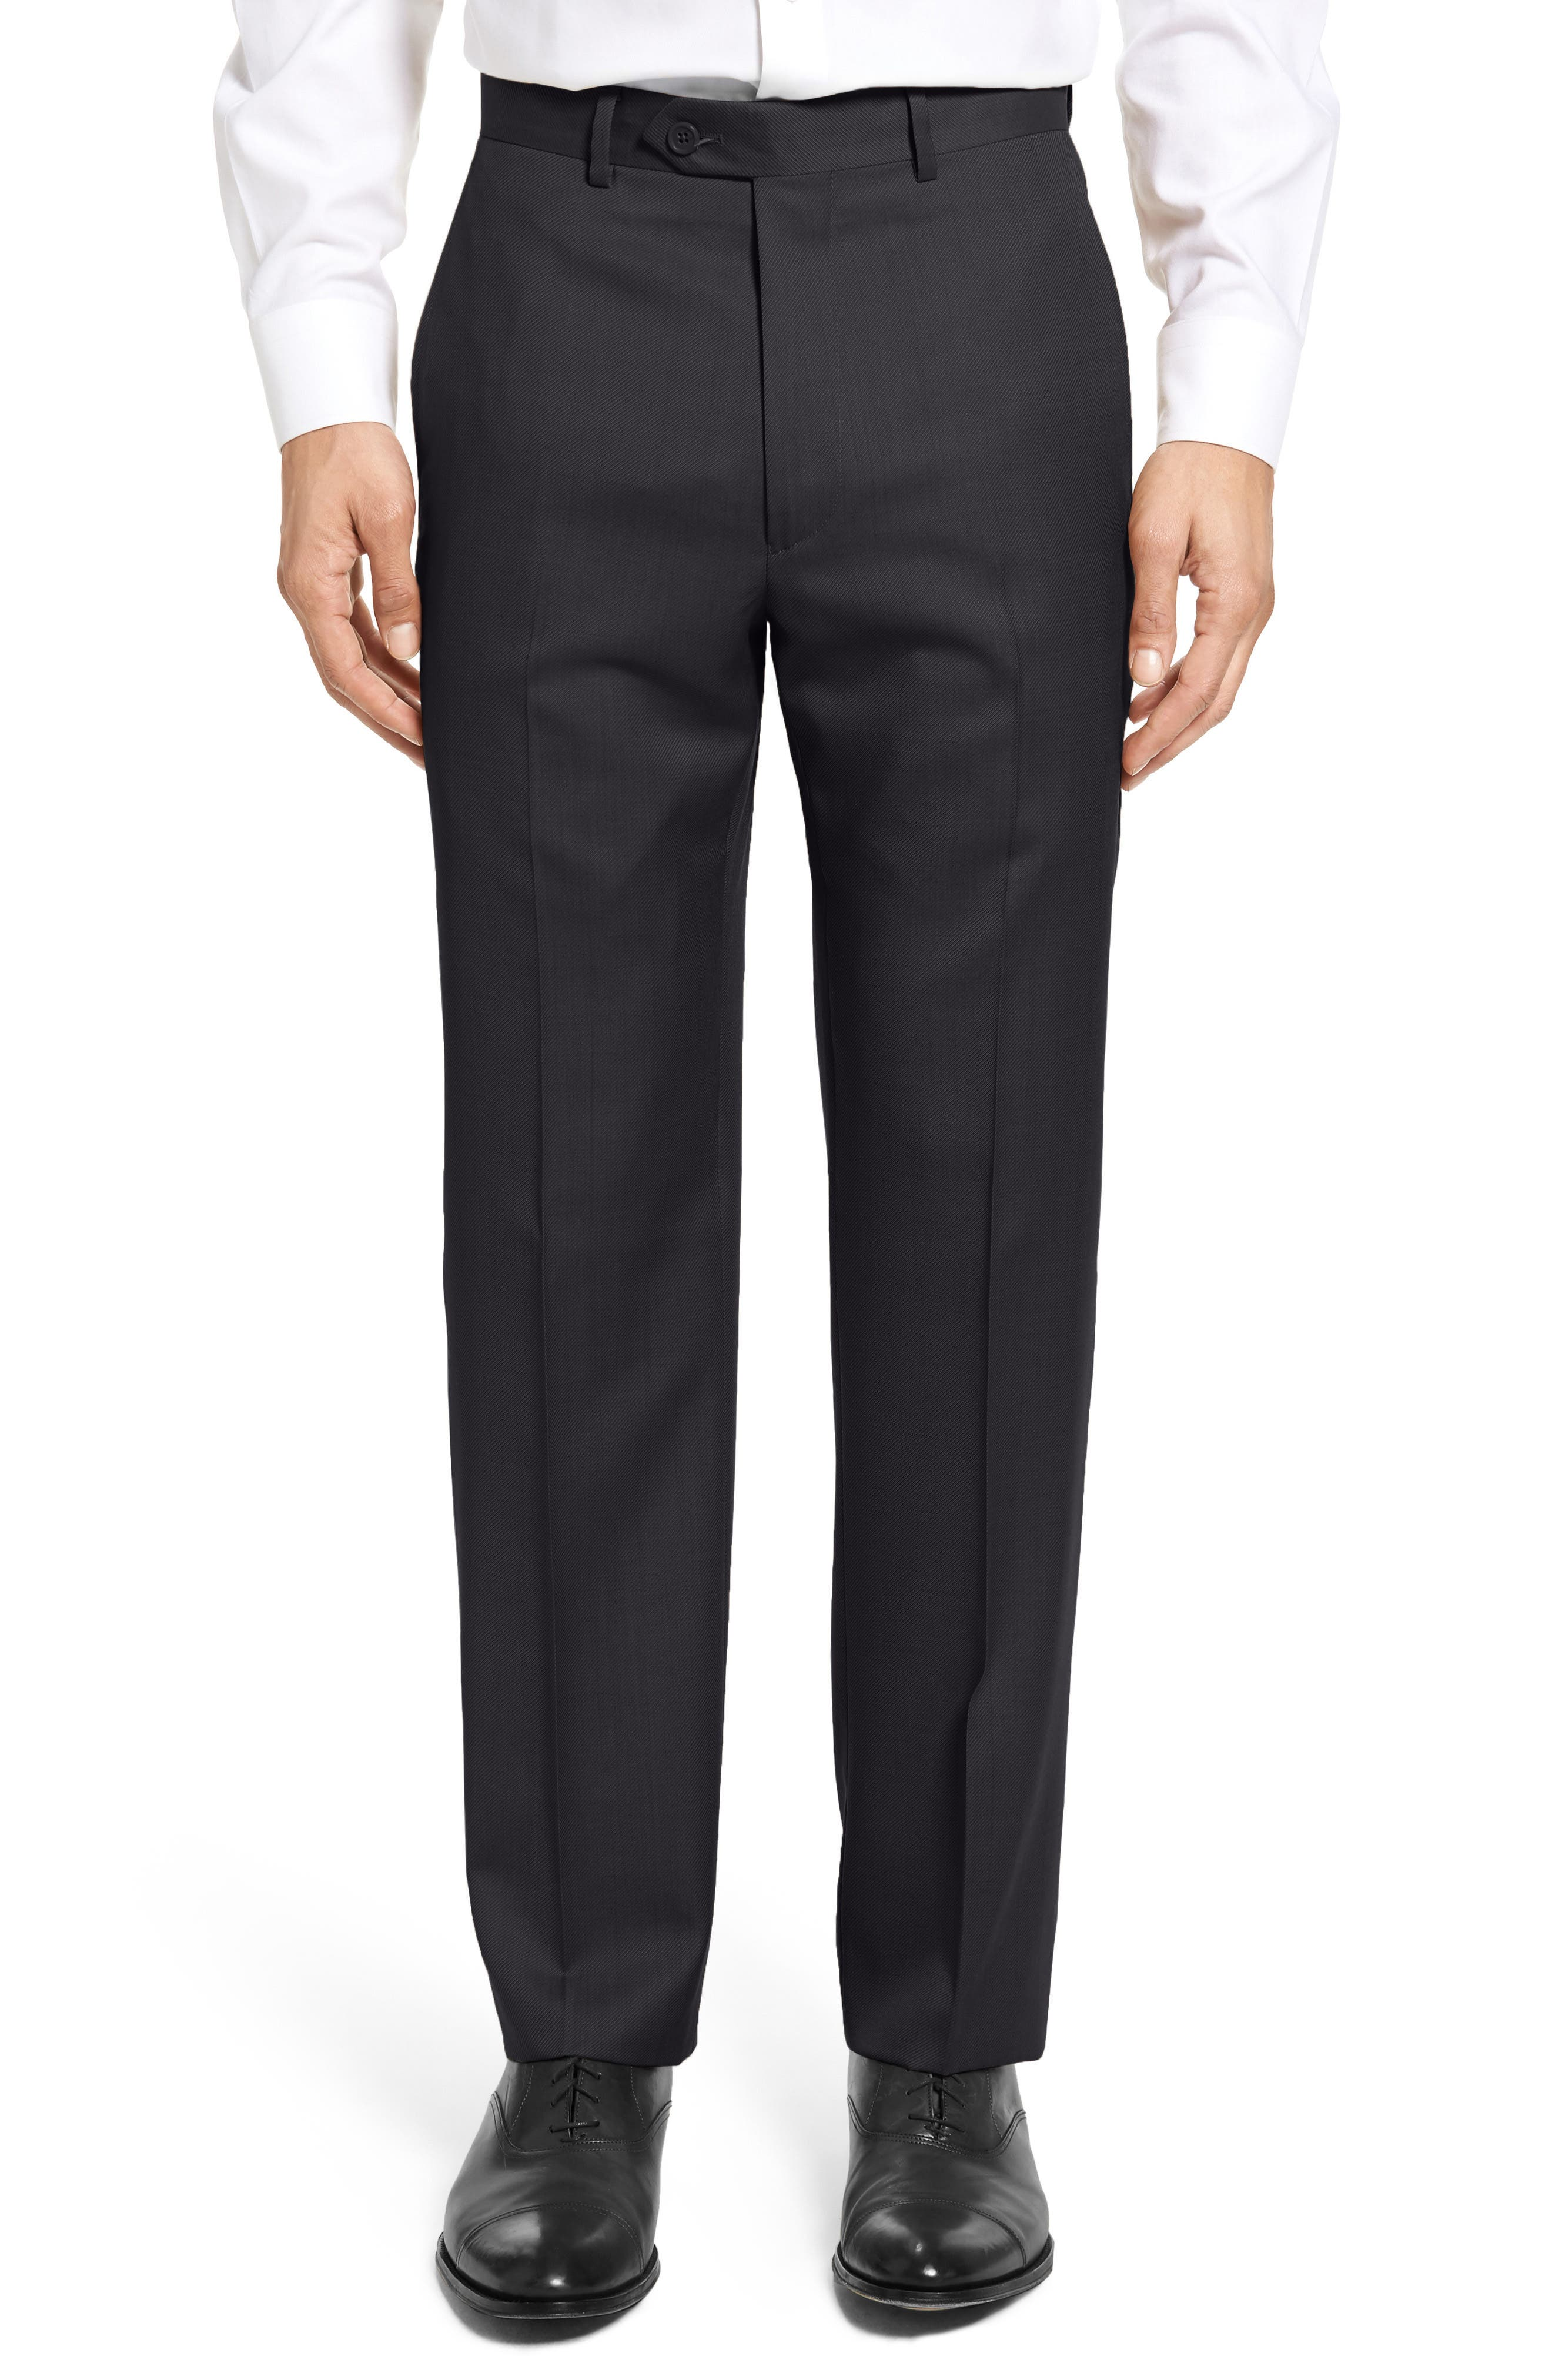 SANTORELLI, Flat Front Twill Wool Trousers, Main thumbnail 1, color, BLACK